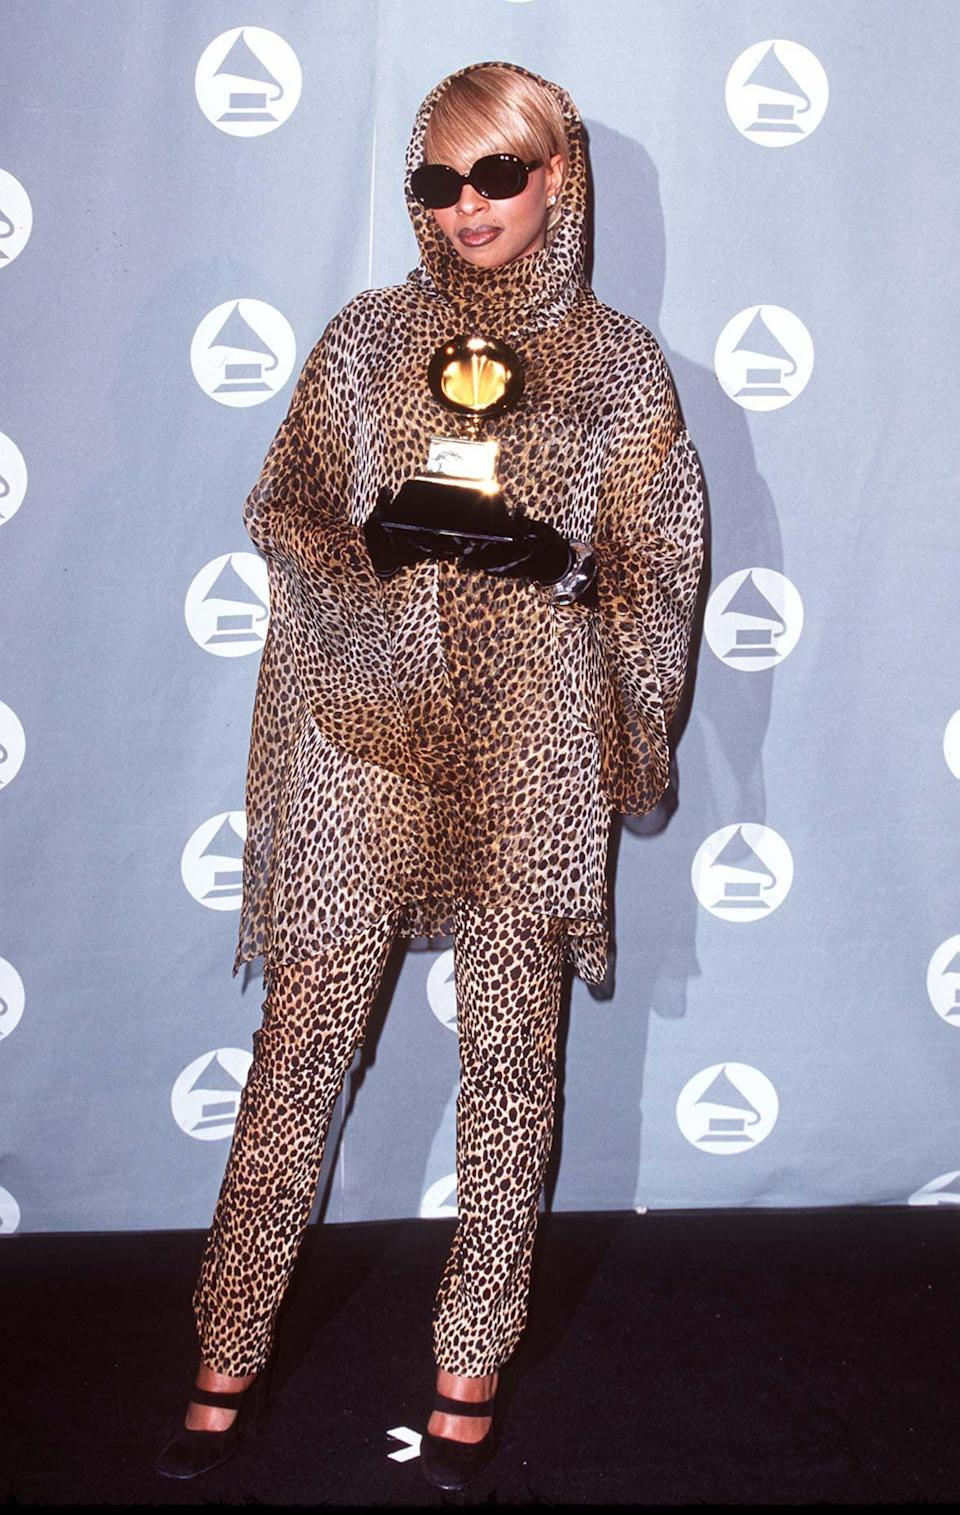 <p>Mary J. Blige wore leopard print from head to toe for her 1996 Grammys look. She accessorized in neutral black sunnies, gloves, and shoes to balance her wild ensemble.</p>